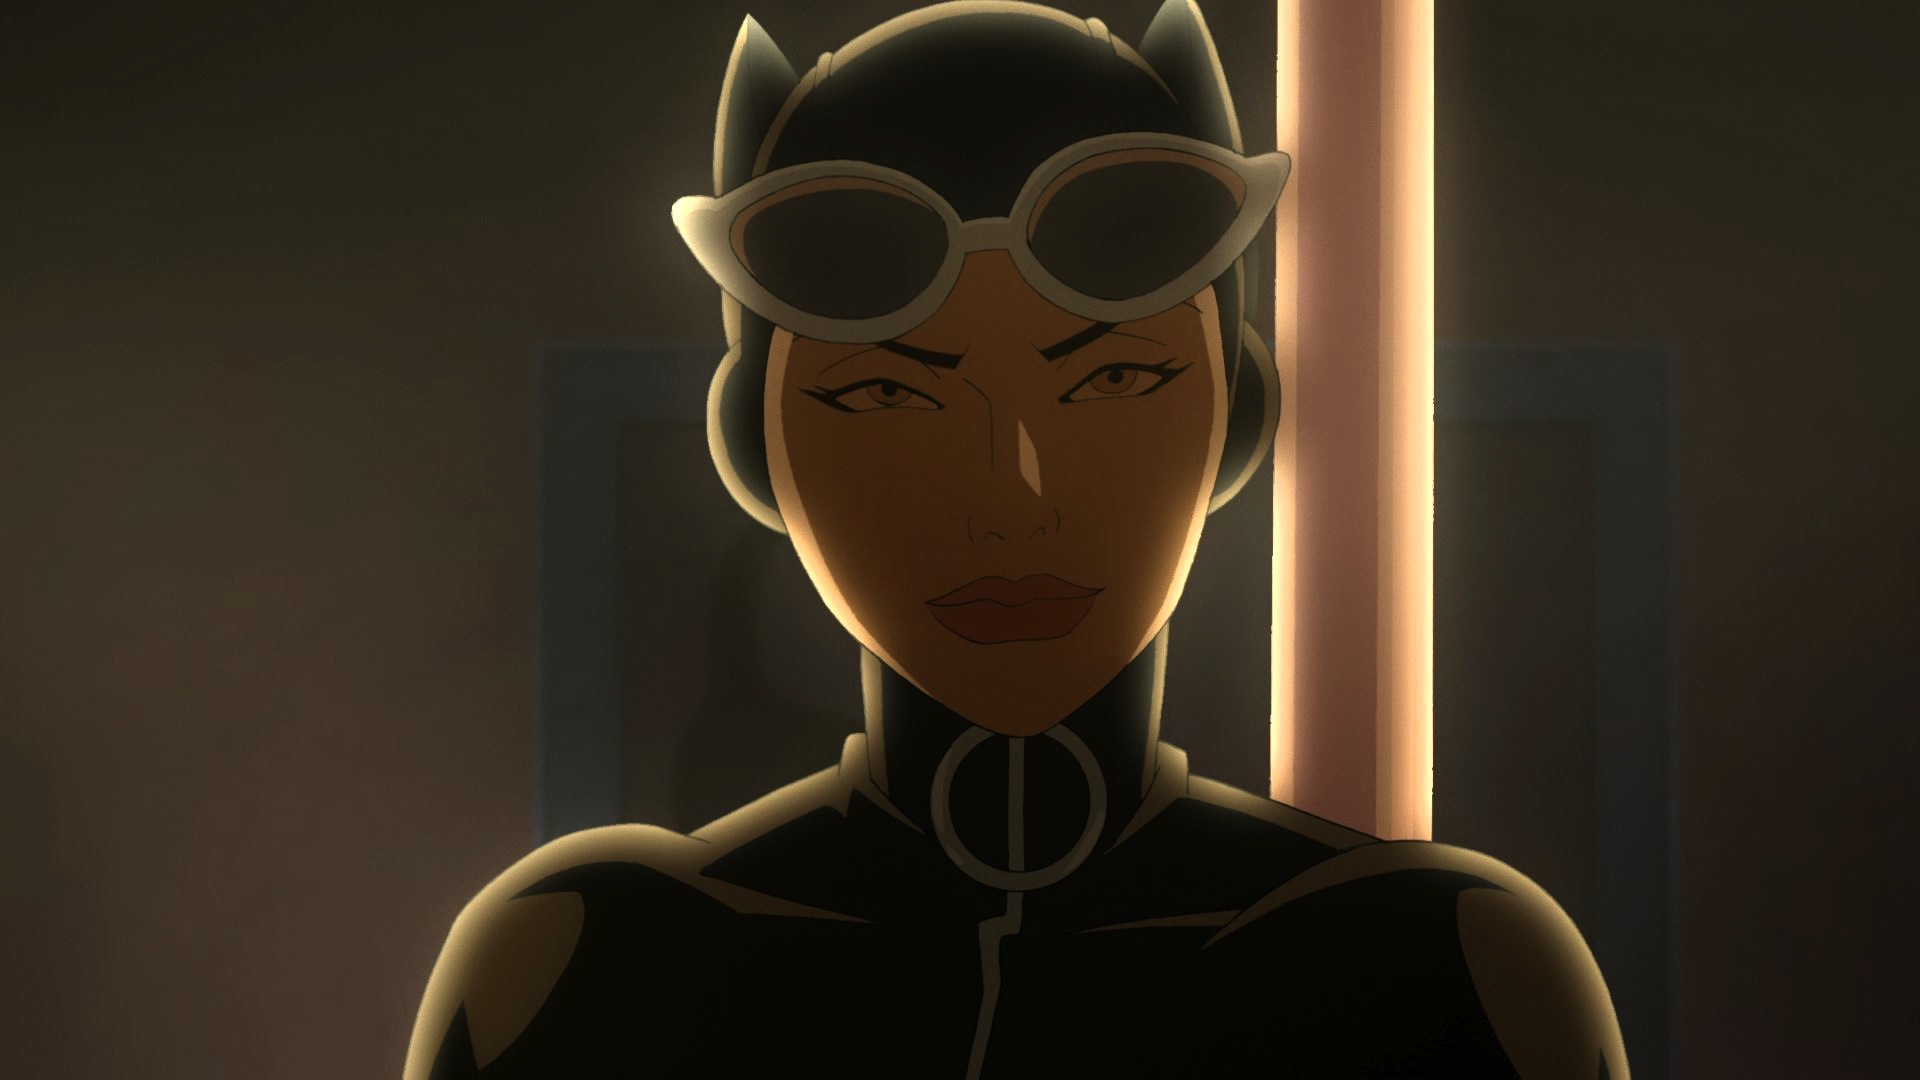 http://collider.com/wp-content/uploads/catwoman-animated-short-movie-image-01.jpg